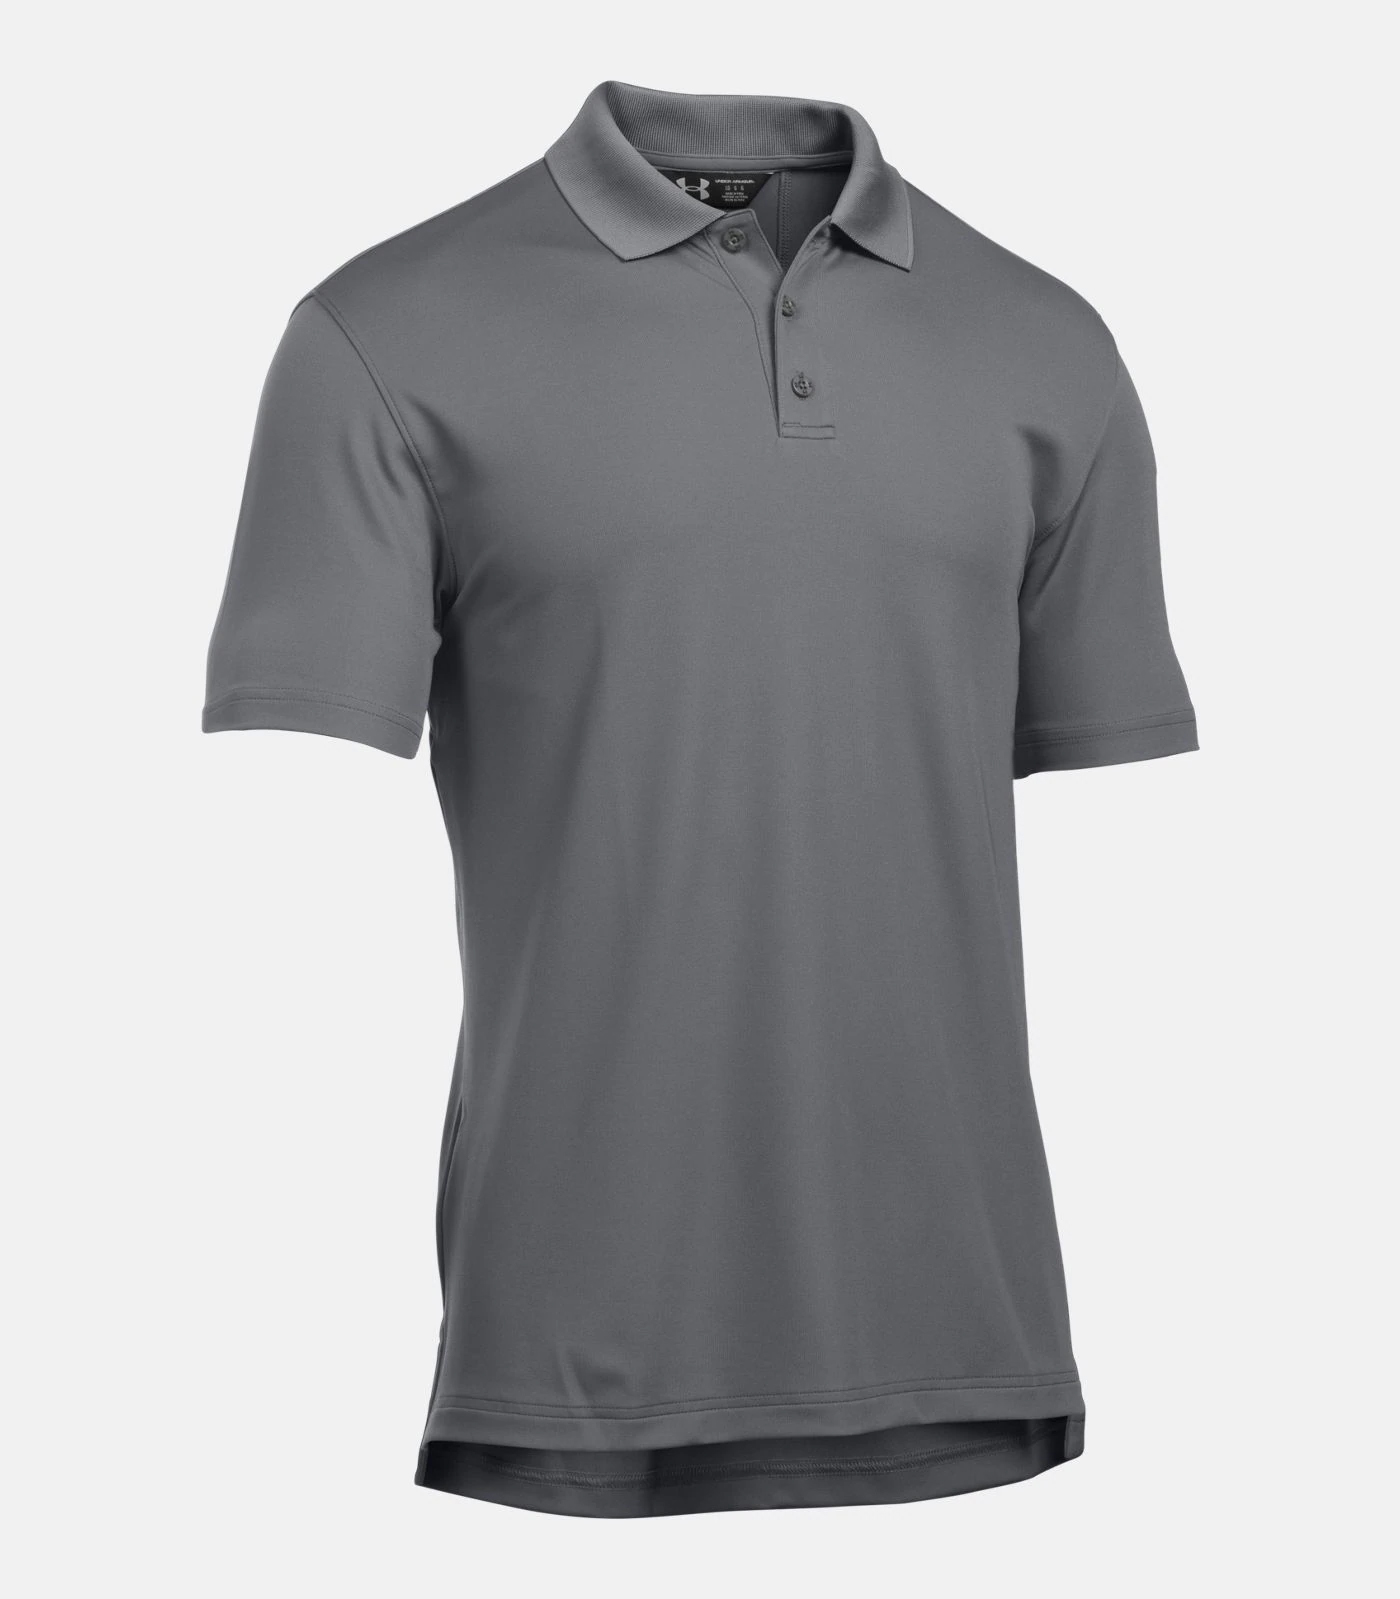 MENS_POLO_TacPerformance-SS_UAR1279759040_02